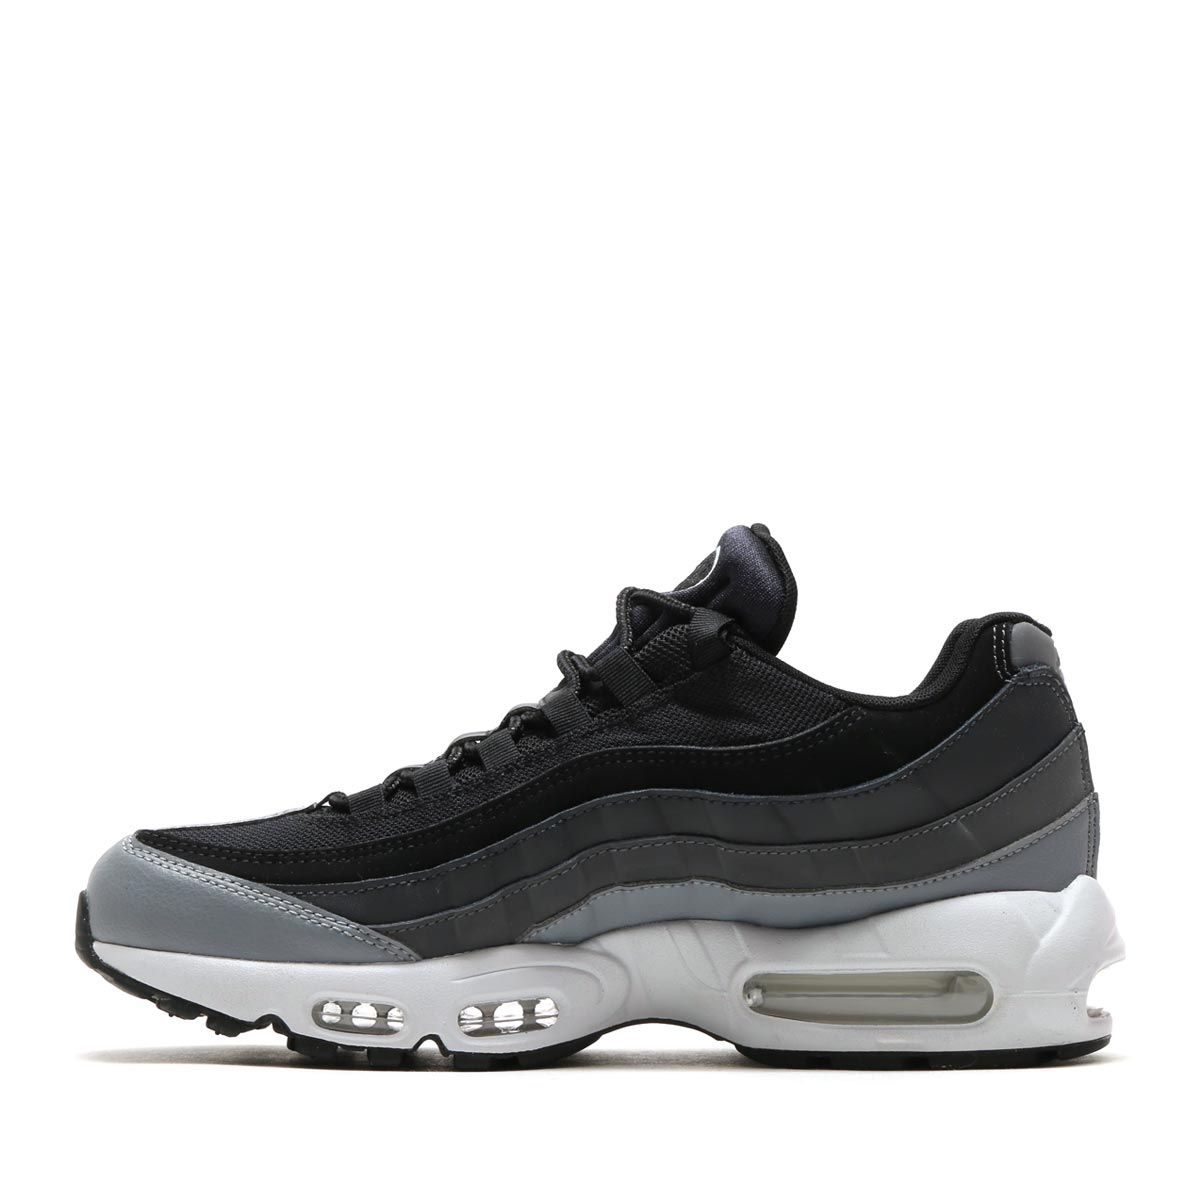 8f82e6d5013 NIKE AIR MAX 95 ESSENTIAL (Kie Ney AMAX 95 essential) BLACK BLACK-ANTHRACITE -DARK GREY 17FA-I